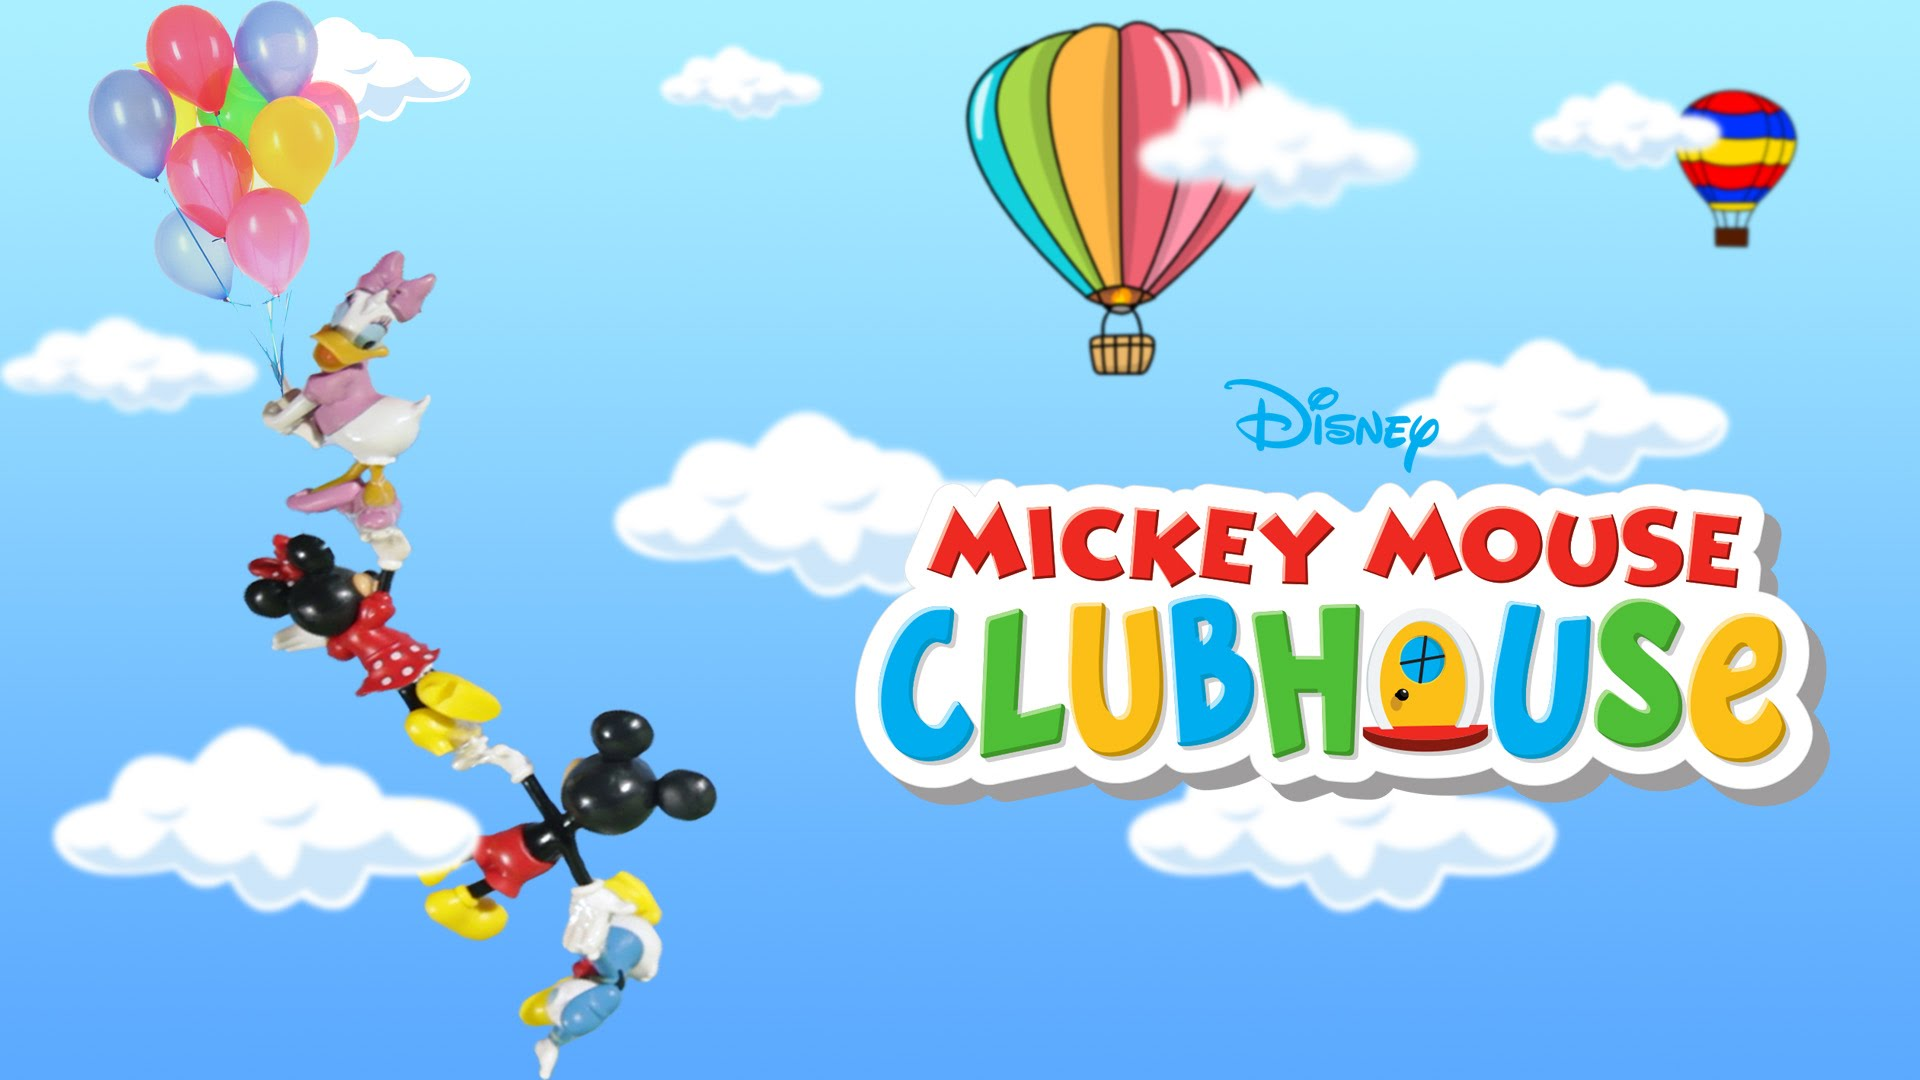 Hot Air Balloon clipart mickey mouse clubhouse #14